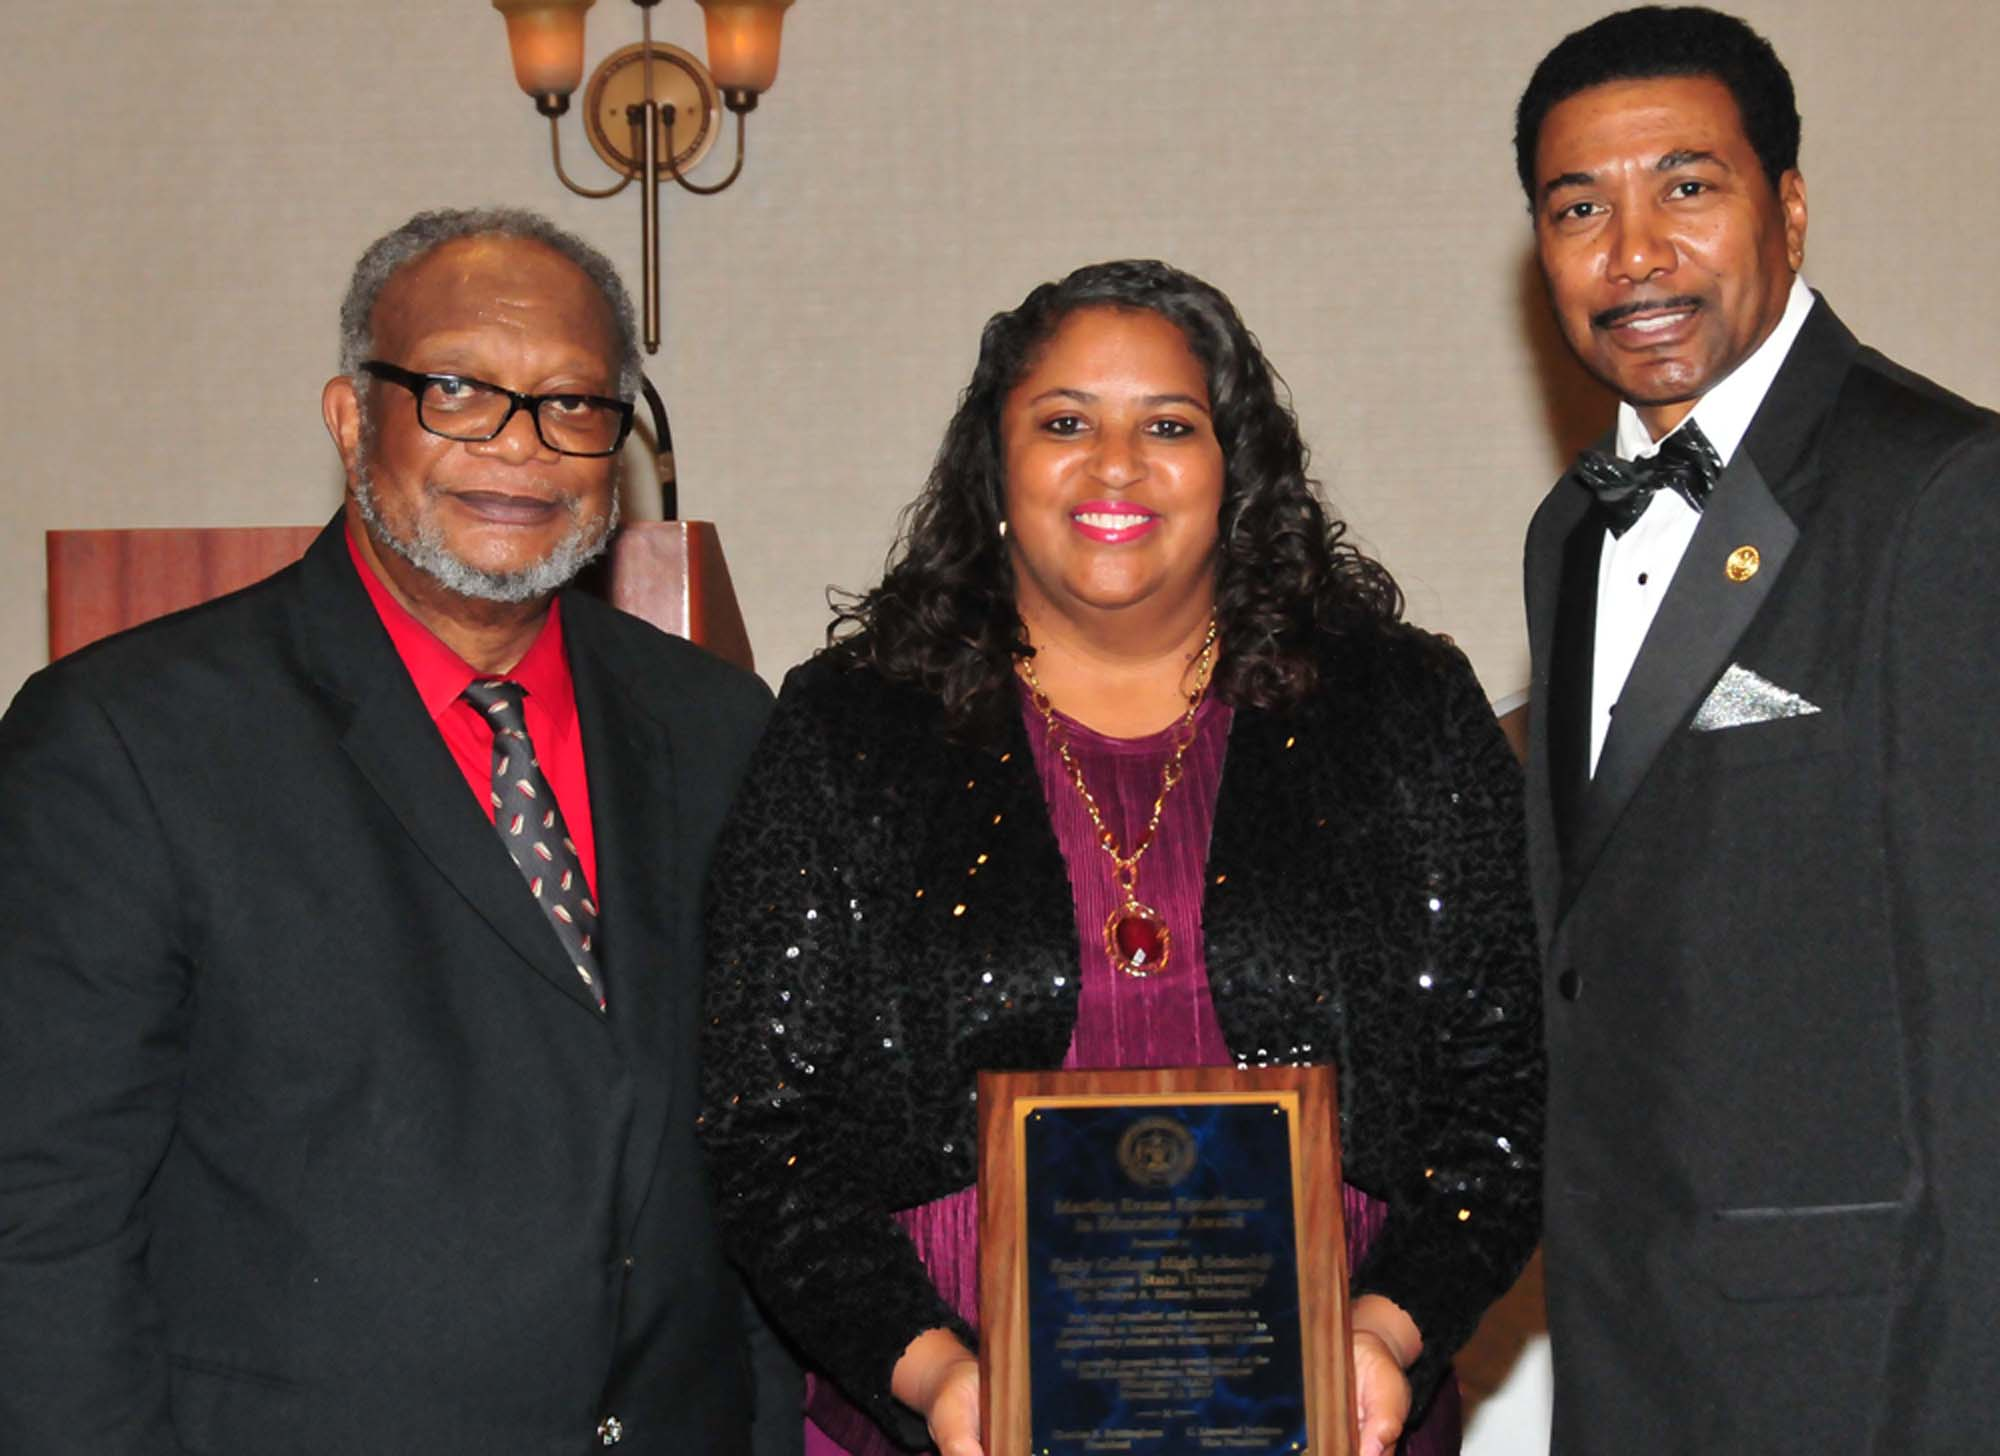 Dr. Evelyn Edney (center), director of the Early College HS, accept the award from the NAACP.